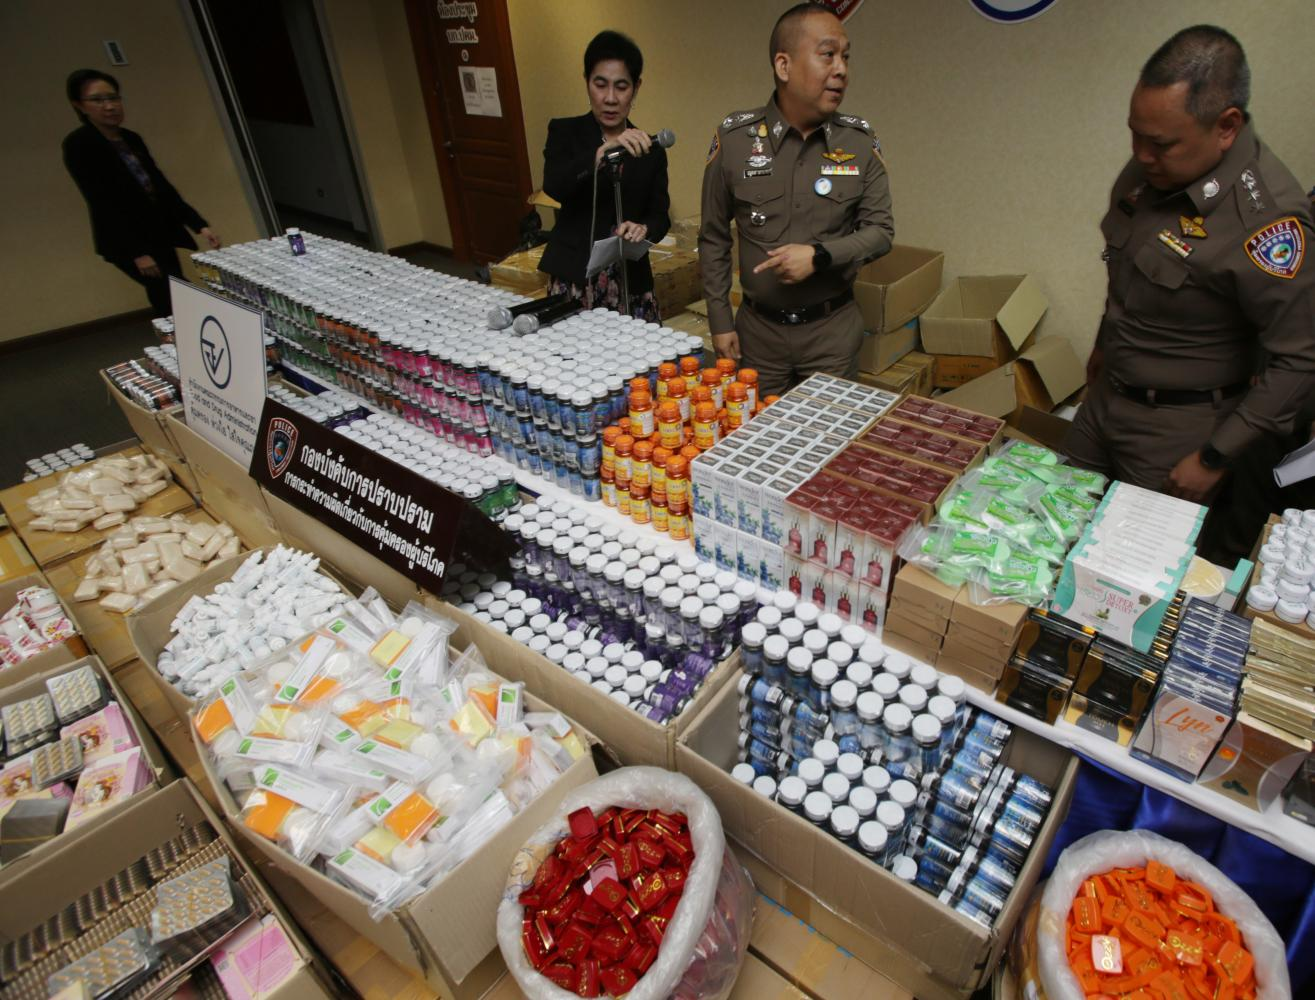 Police display more than 15,000 items of seized counterfeit herbal medicines, cosmetics and supplementary foods at a press briefing at the Consumer Protection Police Division in Bangkok on Tuesday. Apichit Jinakul